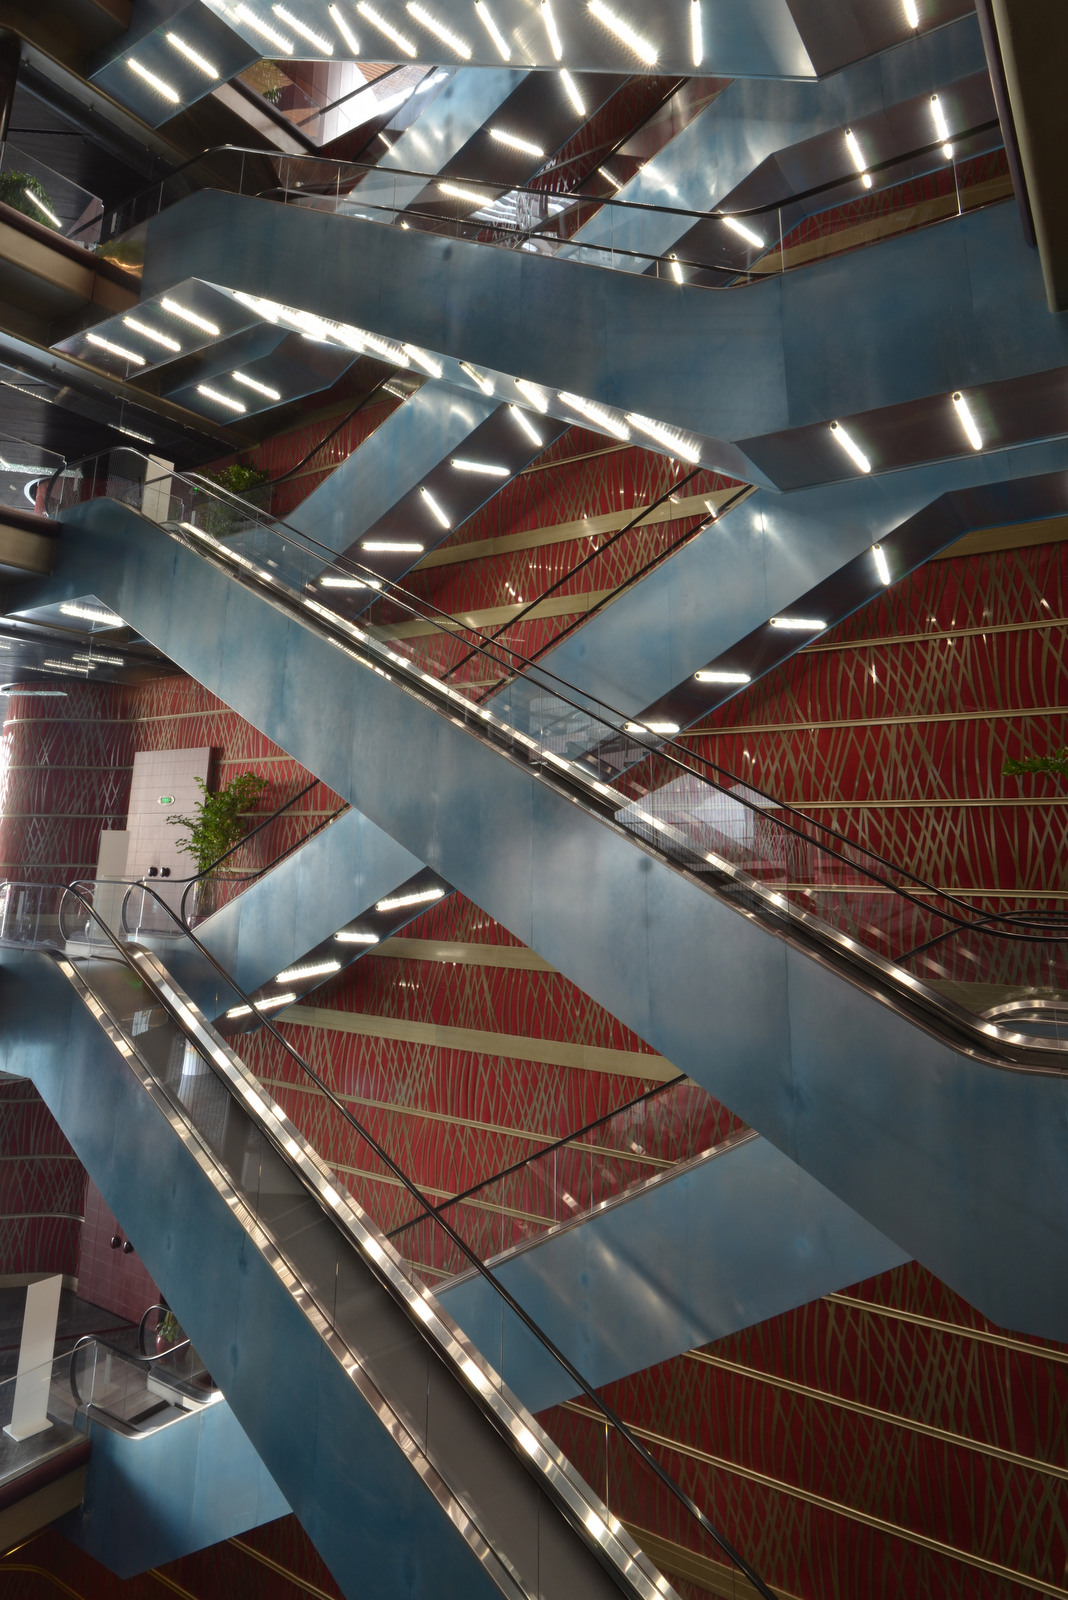 Pano ncpa stair